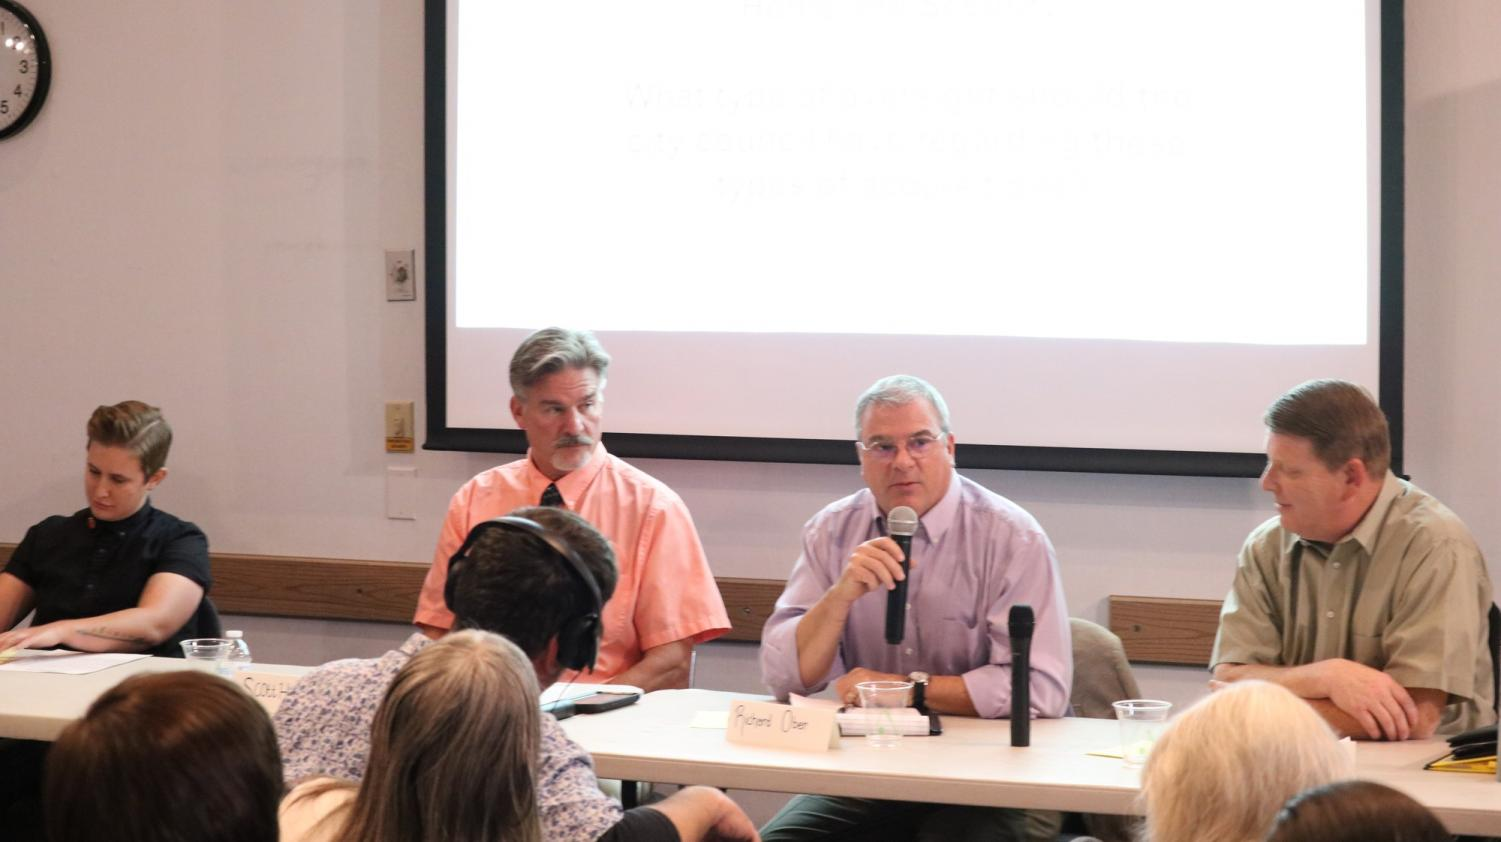 Candidates from left to right; Alex Brown, Scott Huber, Rich Ober, Ken Rensink Photo credit: Christian Solis